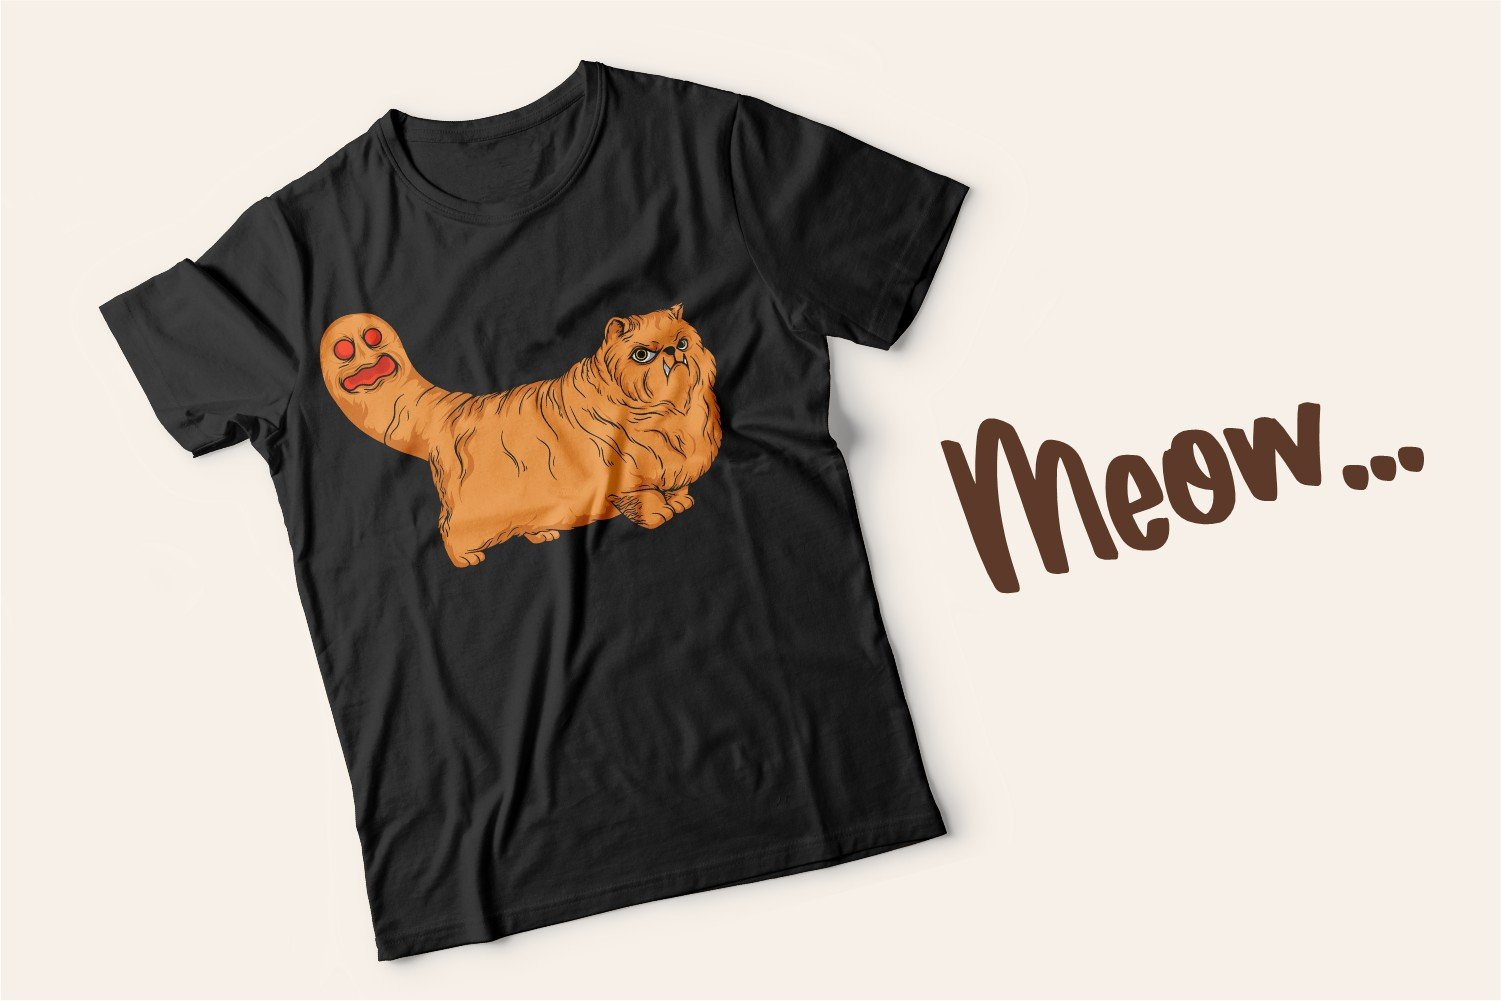 Black T-shirt with a disgruntled fluffy beige cat and meow lettering.